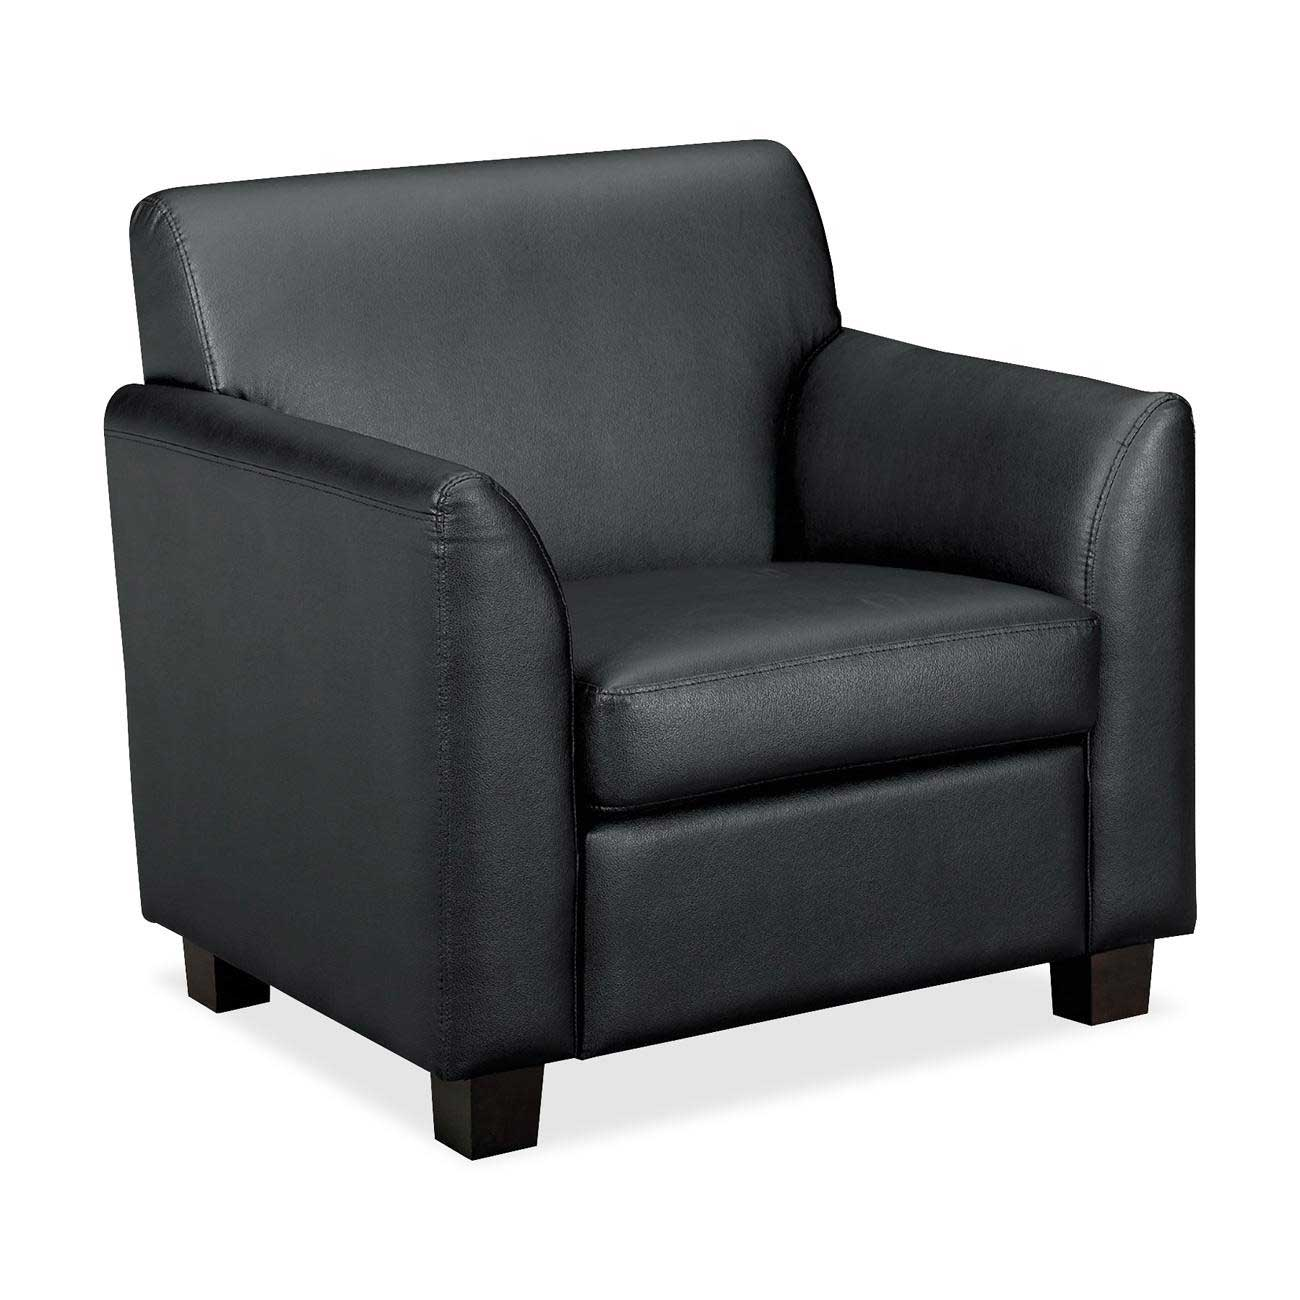 Basyx office furniture black leather chairs